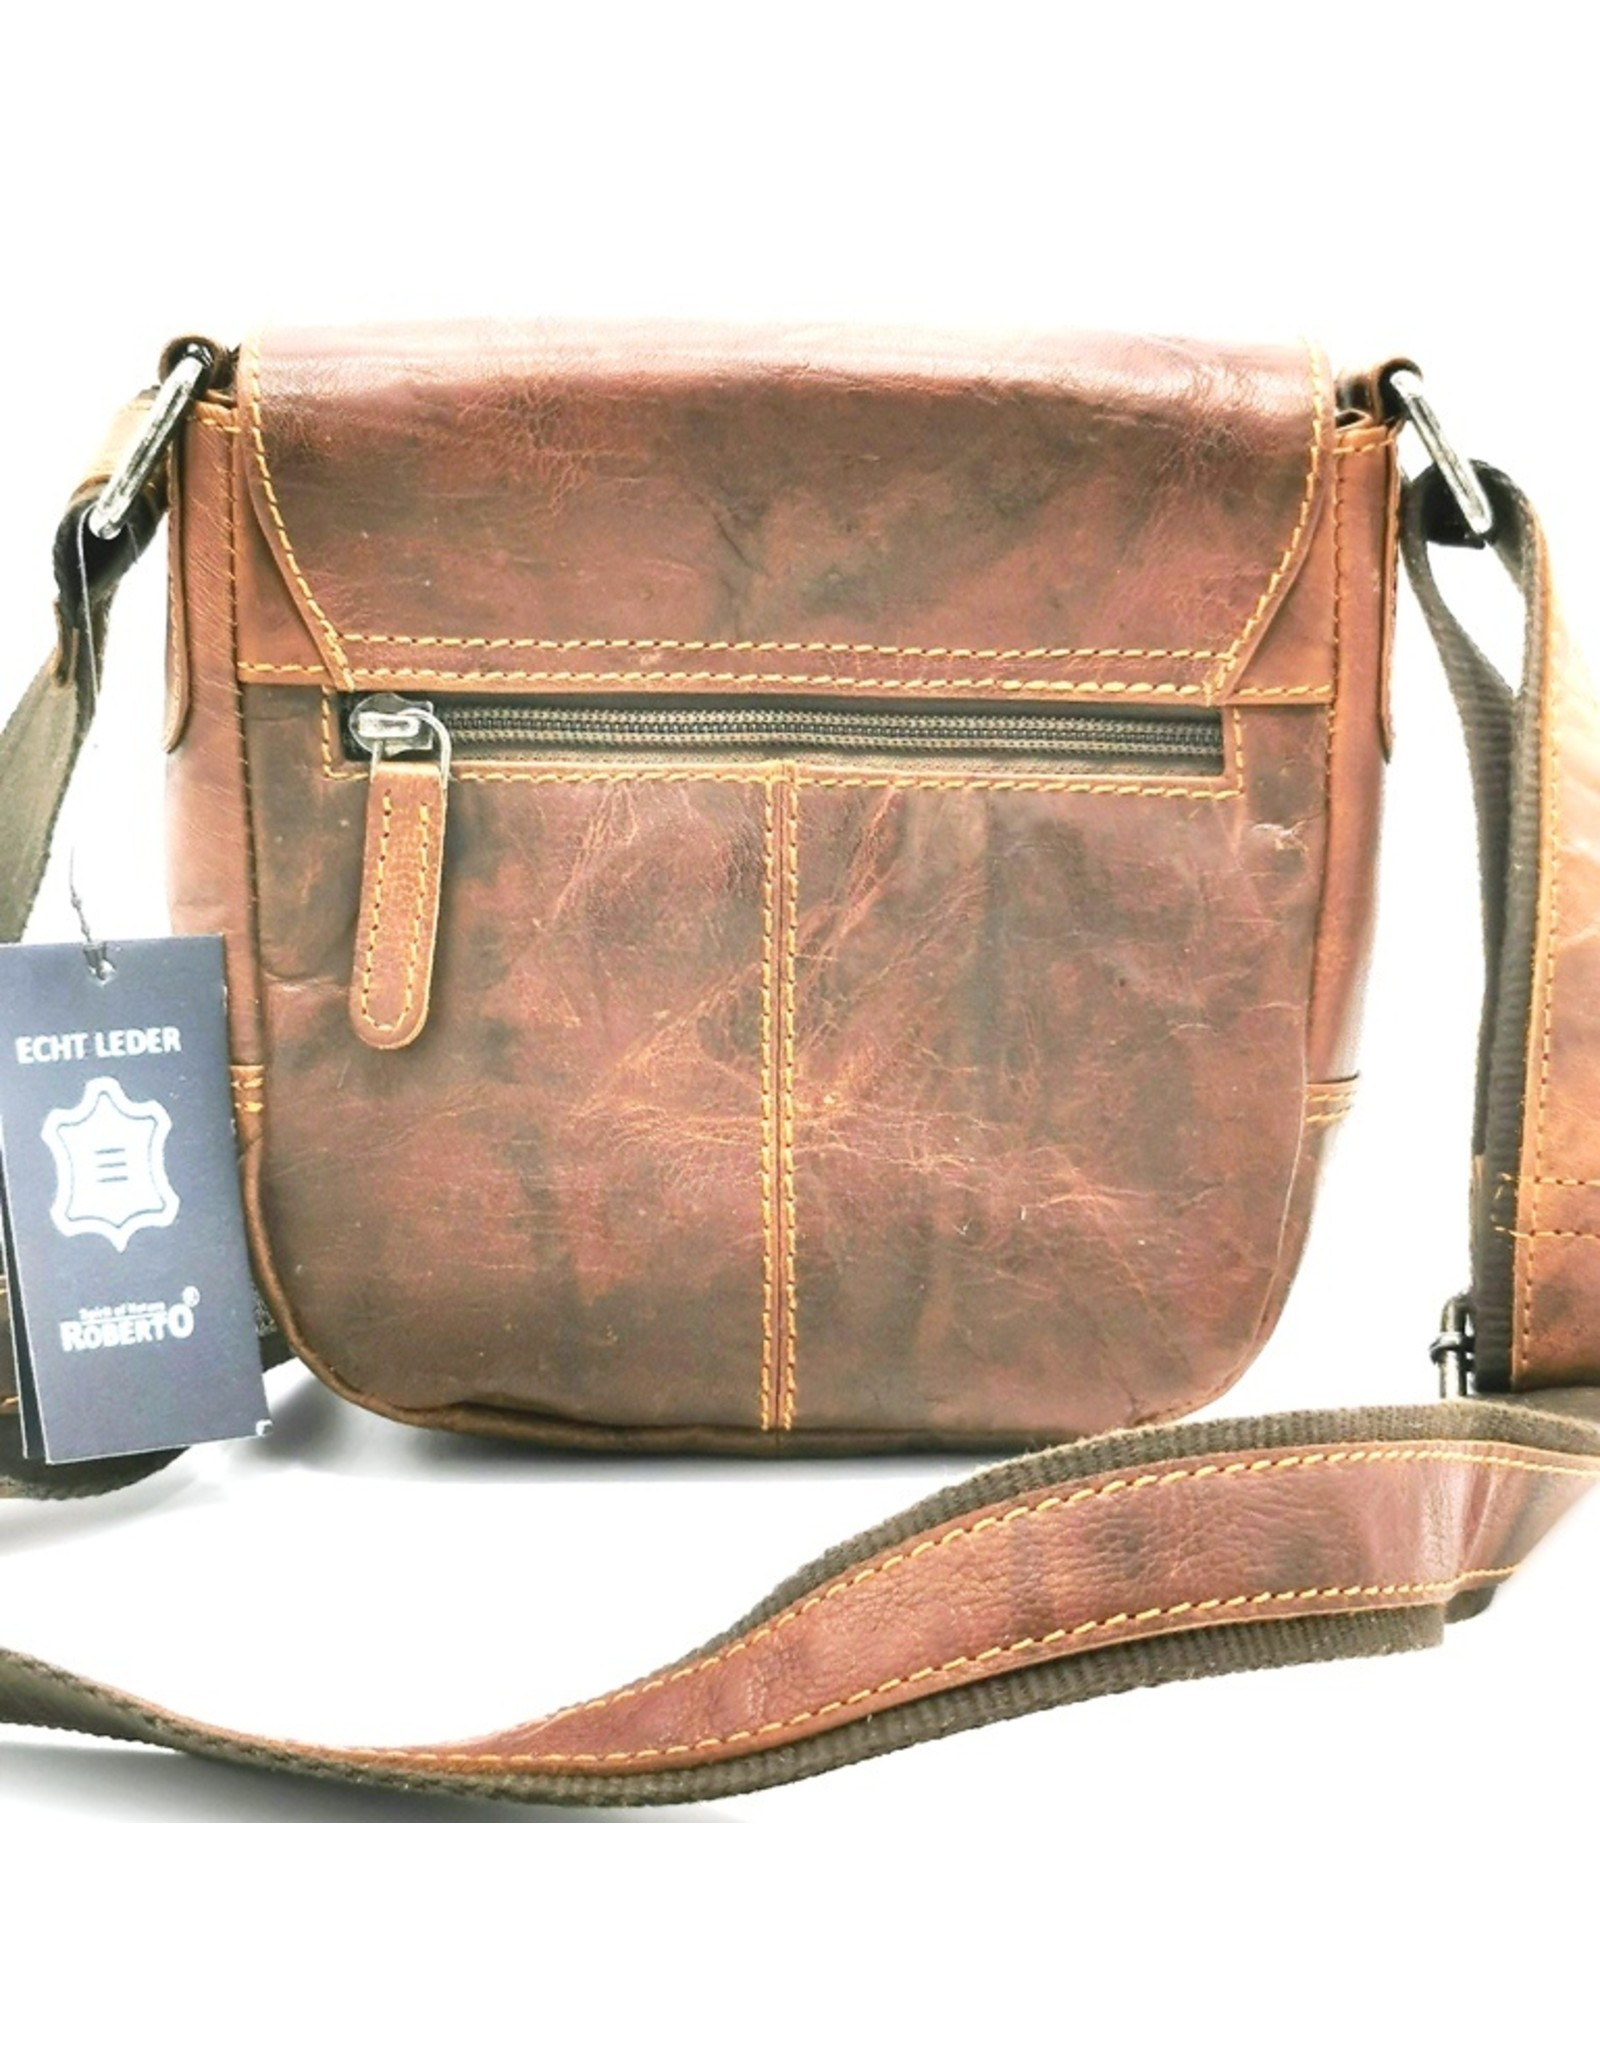 Roberto Leather Shoulder bags  Leather crossbody bags - Leather shoulder bag Roberto with cover and sliding clasp